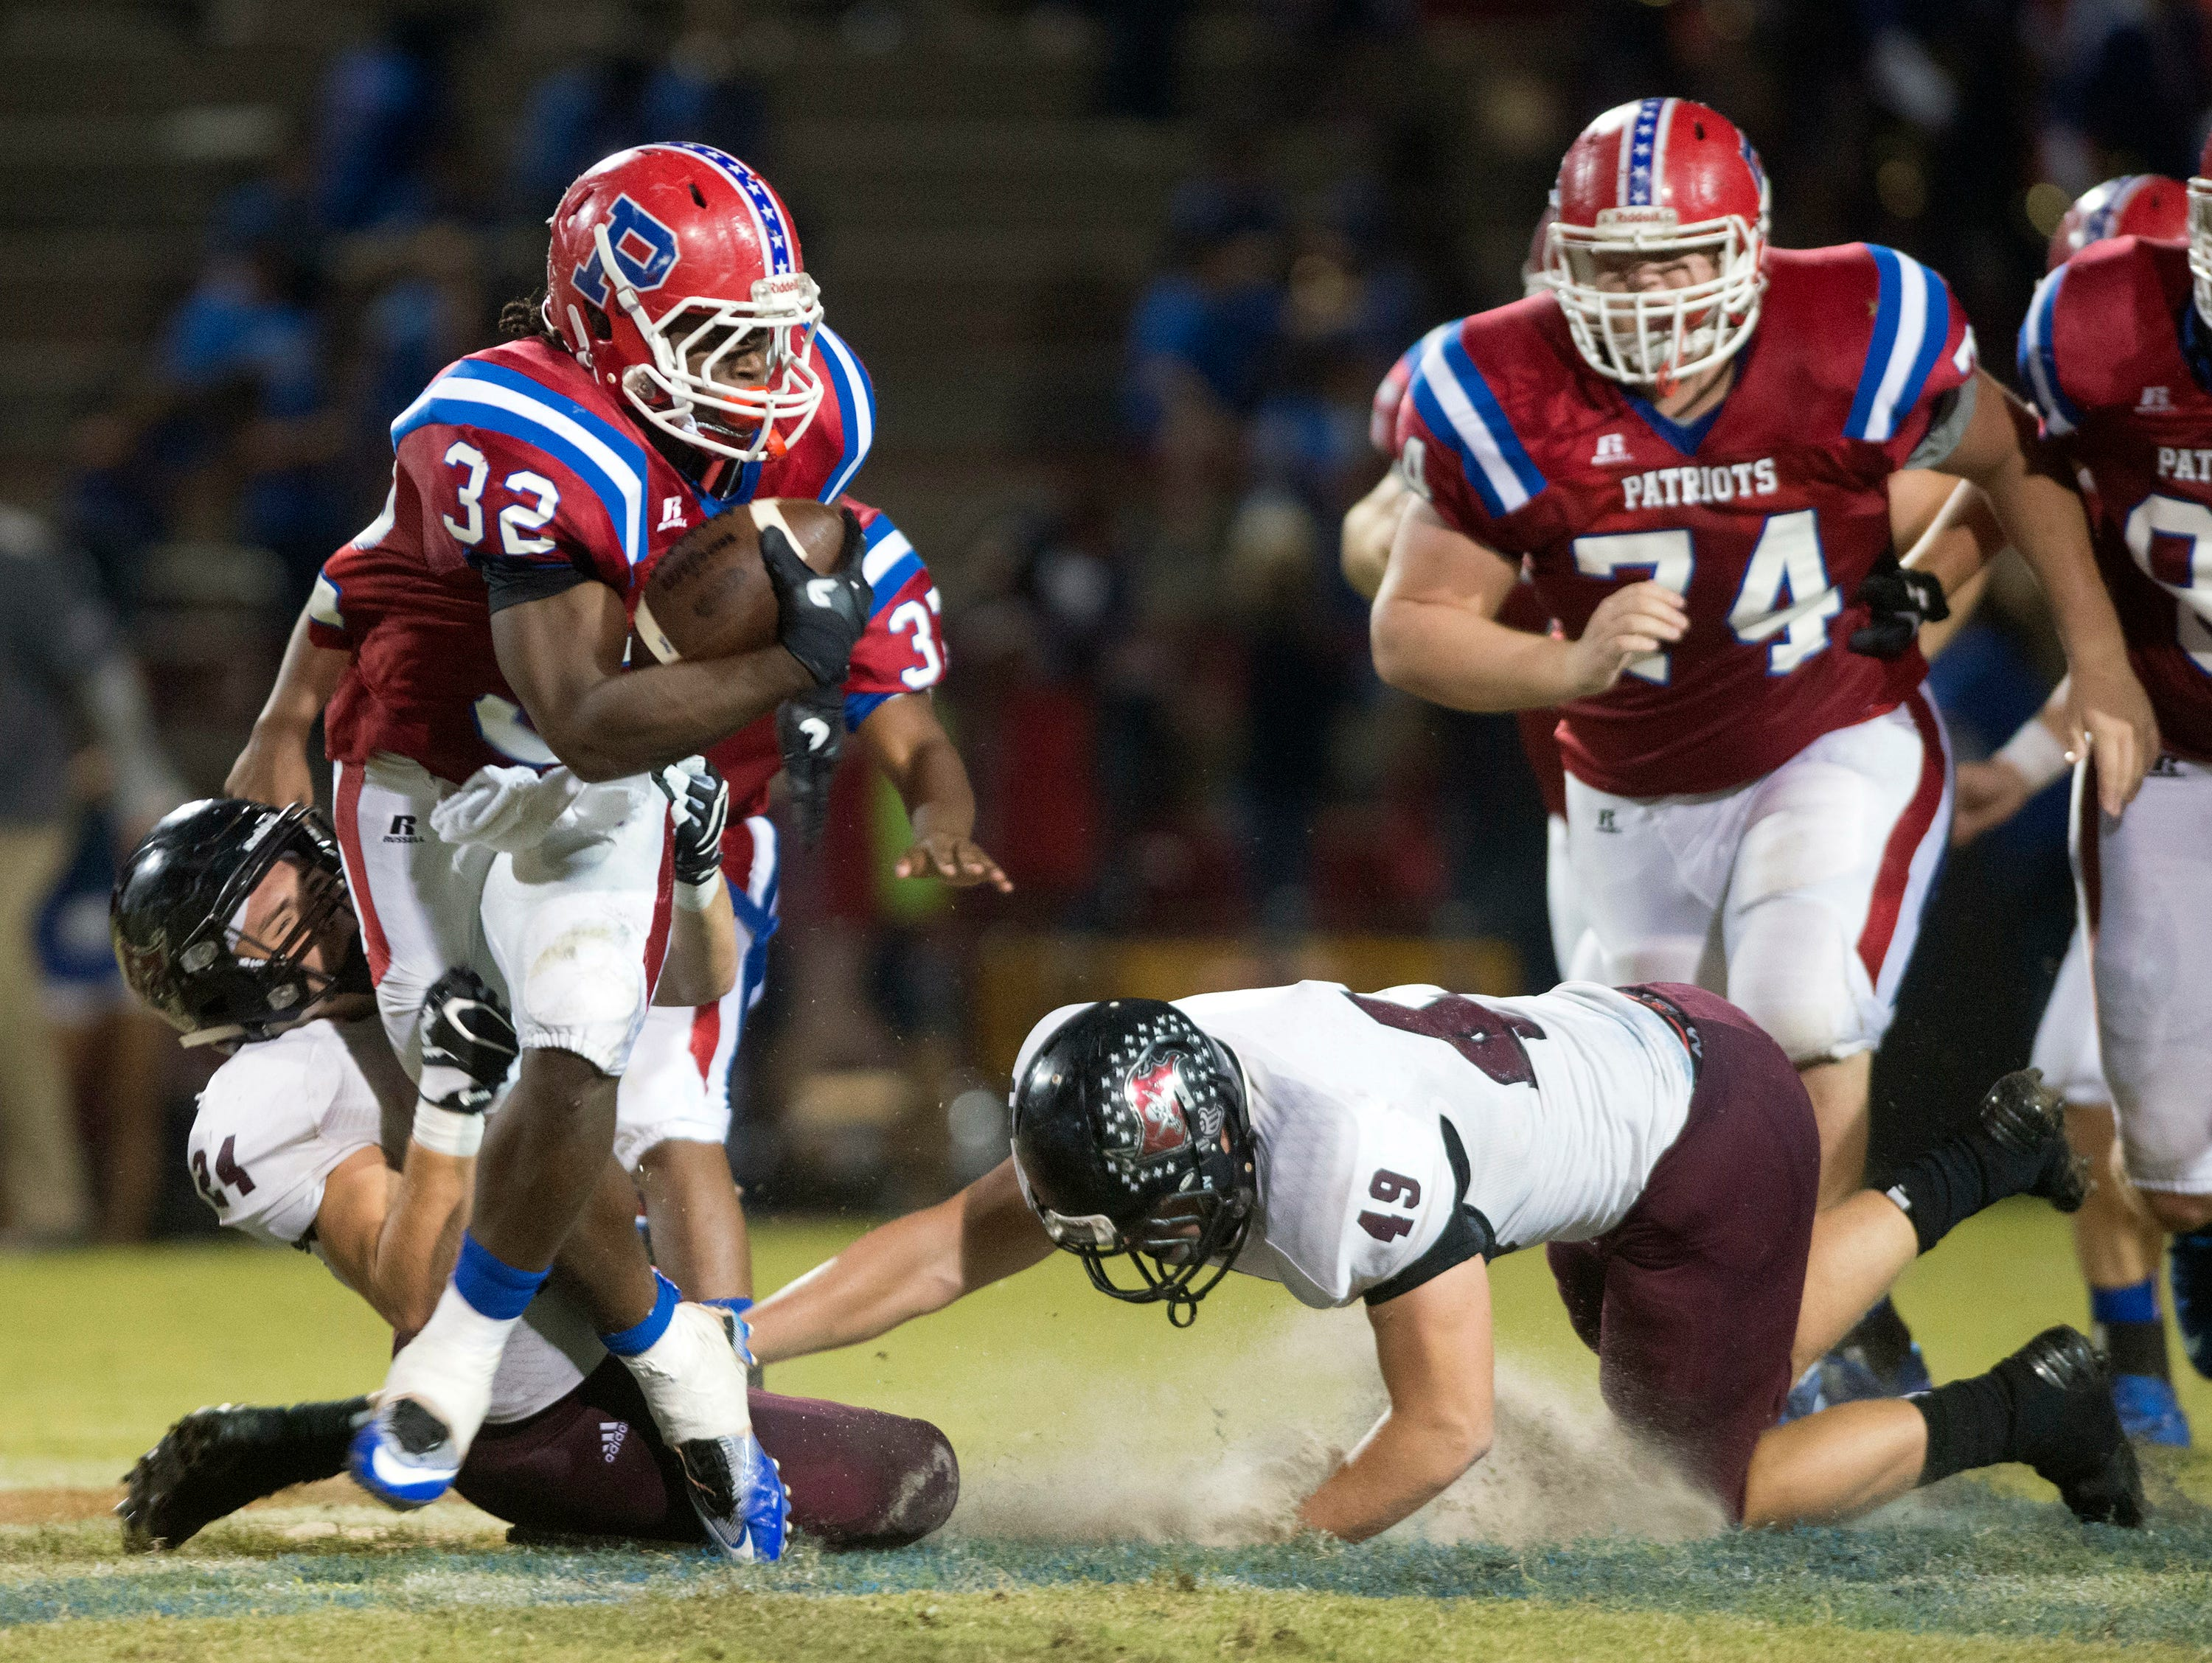 Pace High School running back Anthony Johnson, Jr. (No. 32) gives Navarre High School corner, Reese Parker, (No 24) and end, Ryan Struck, (No. 49), the slip to gain extra yards during Friday night's District 2-6A matchup.